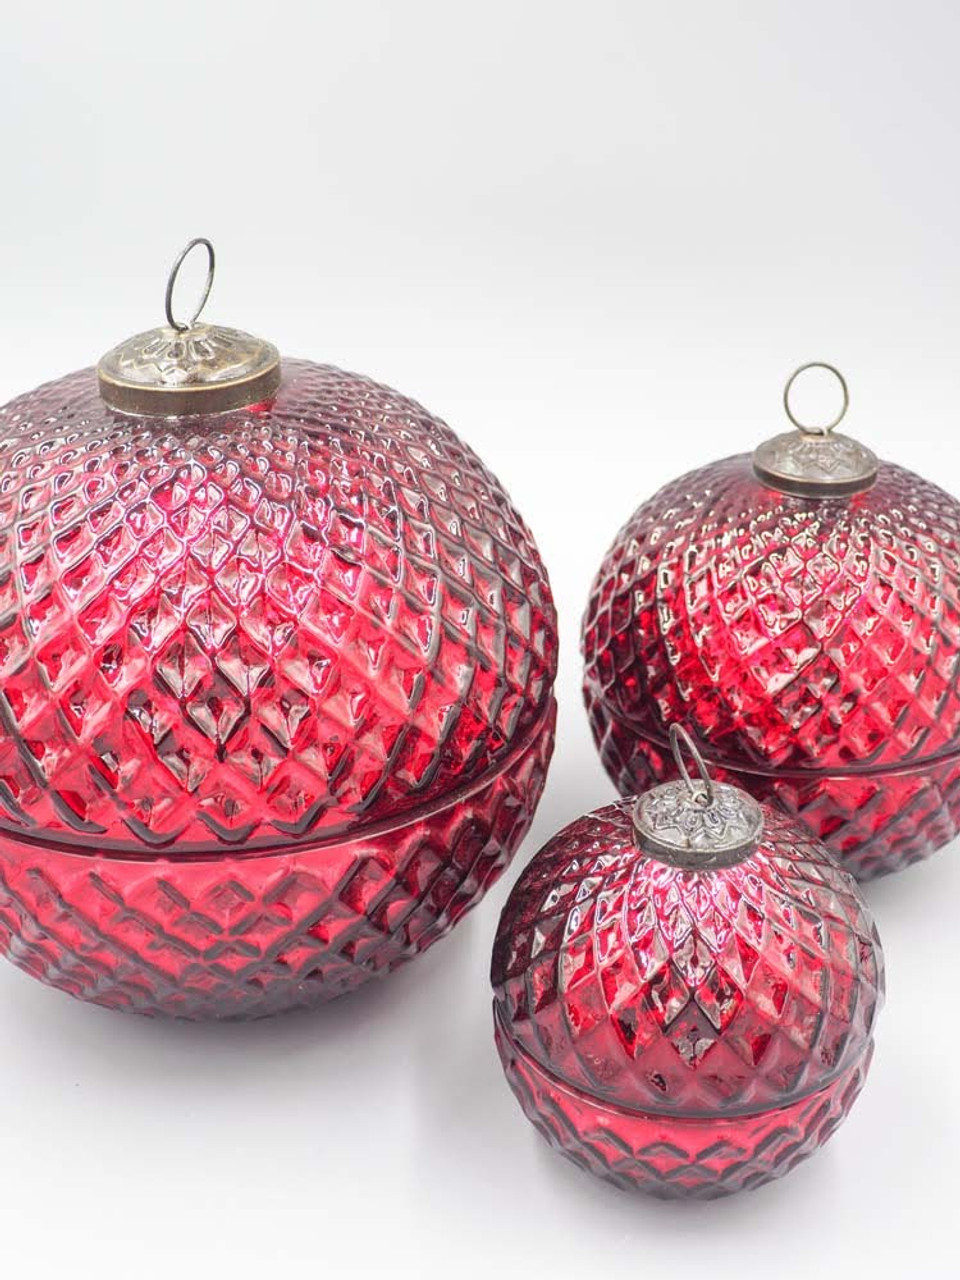 Cranberry Spice Red 3.5 Inch Ornament Candle